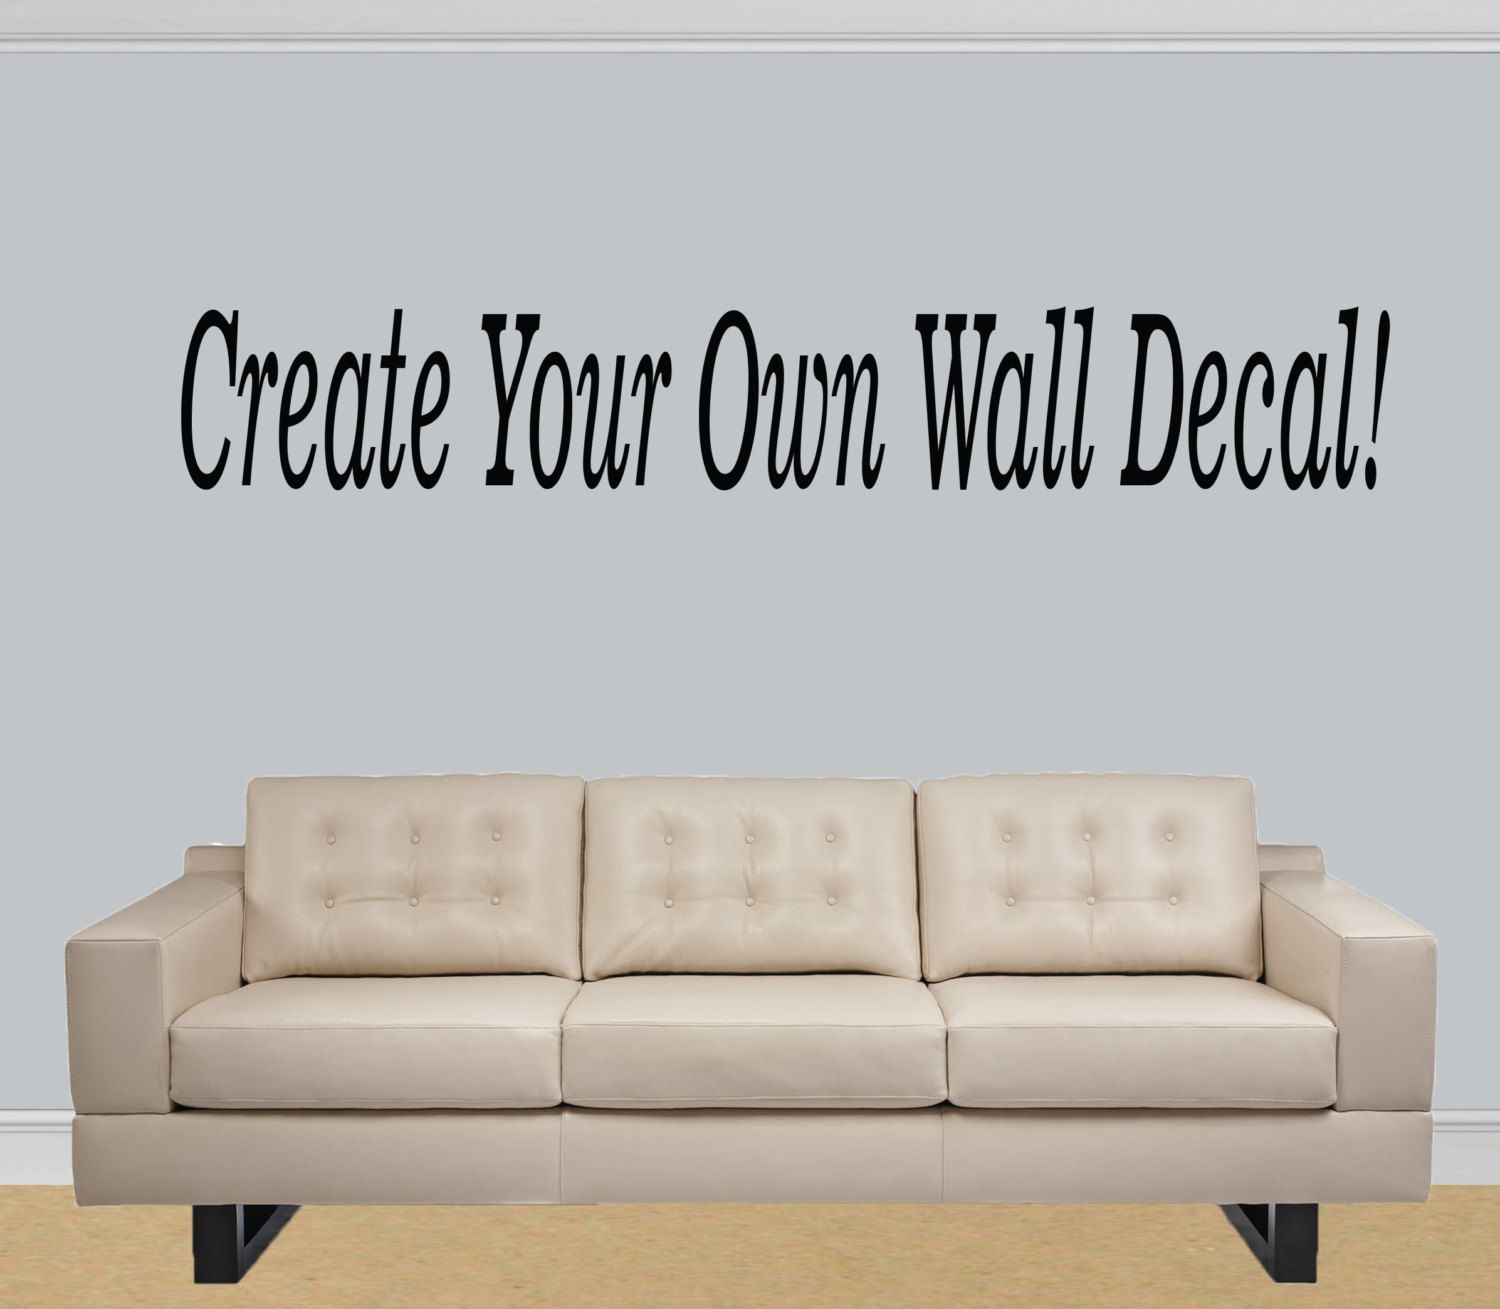 Custom vinyl wall decals amazing with wall decal design your own design your own wall decal quote custom make diyvinyldesigns make your own vinyl wall decals amipublicfo Image collections